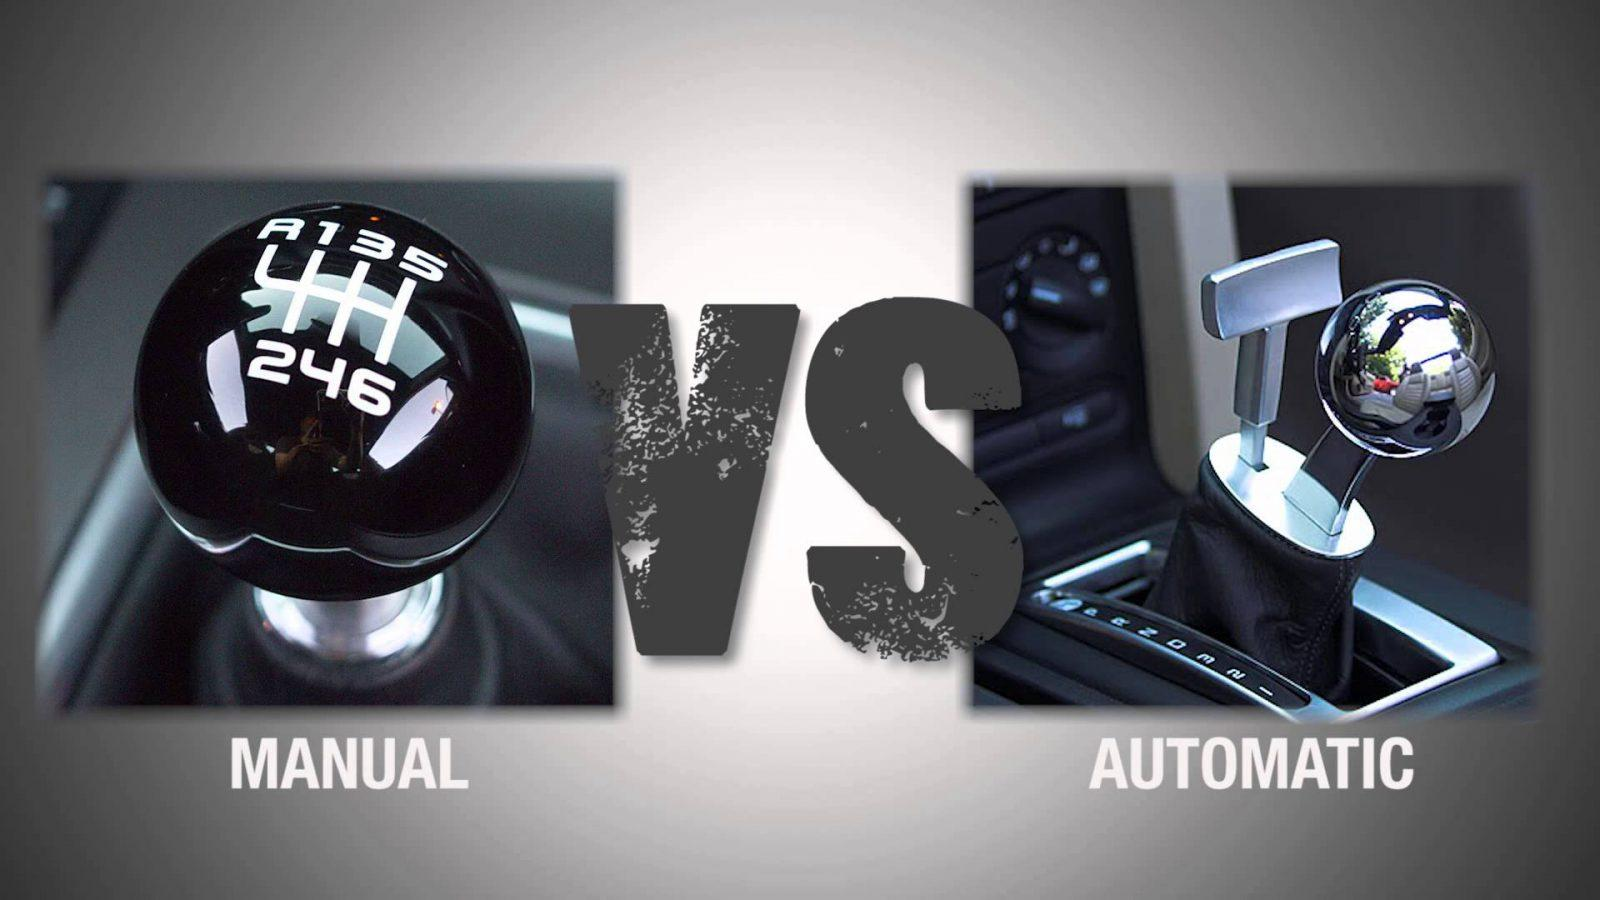 does the advantage of manual transmission is worth discarding autos rh carfromjapan com Manual to Automatic Conversion Converting Automatic to Manual Transmission